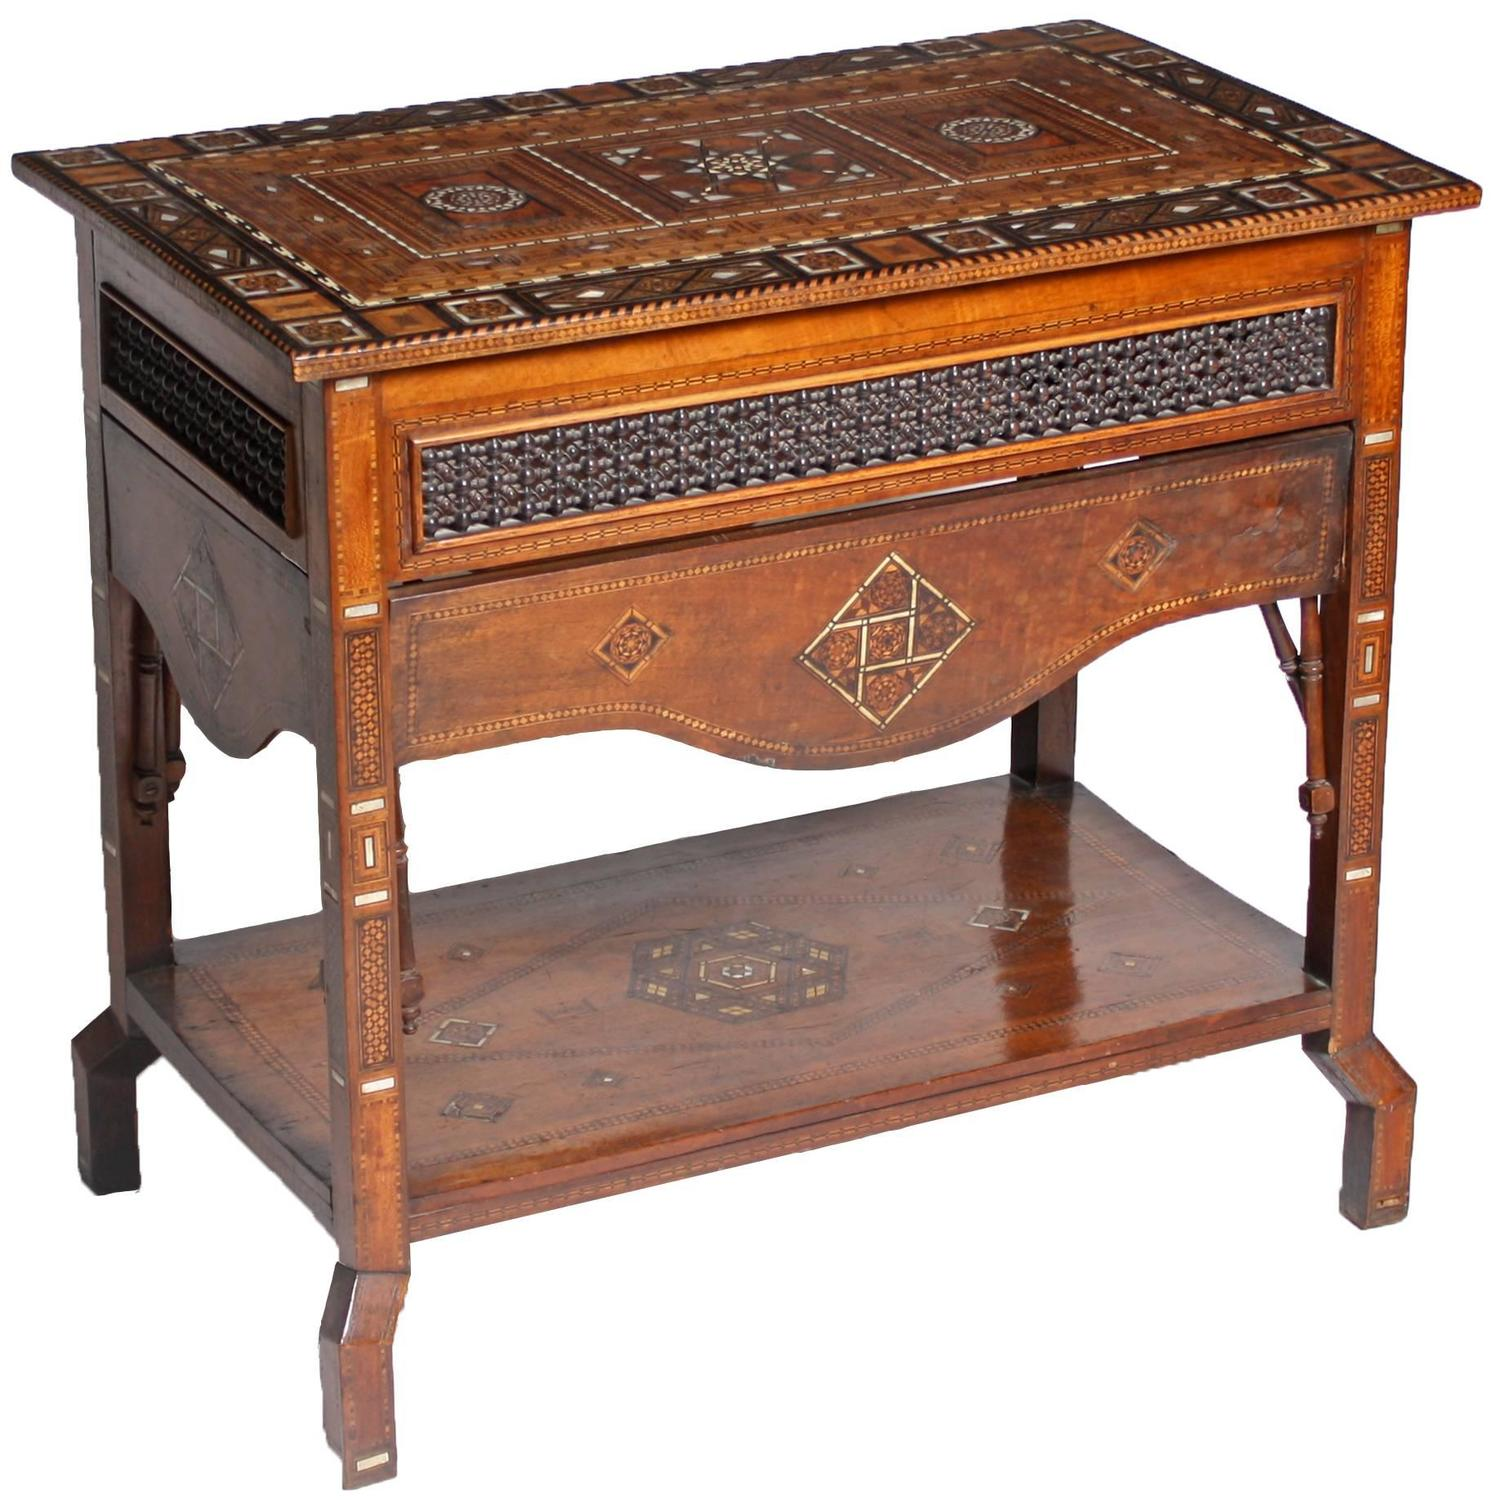 Middle Eastern Inlaid Couscous Table 1890 At 1stdibs